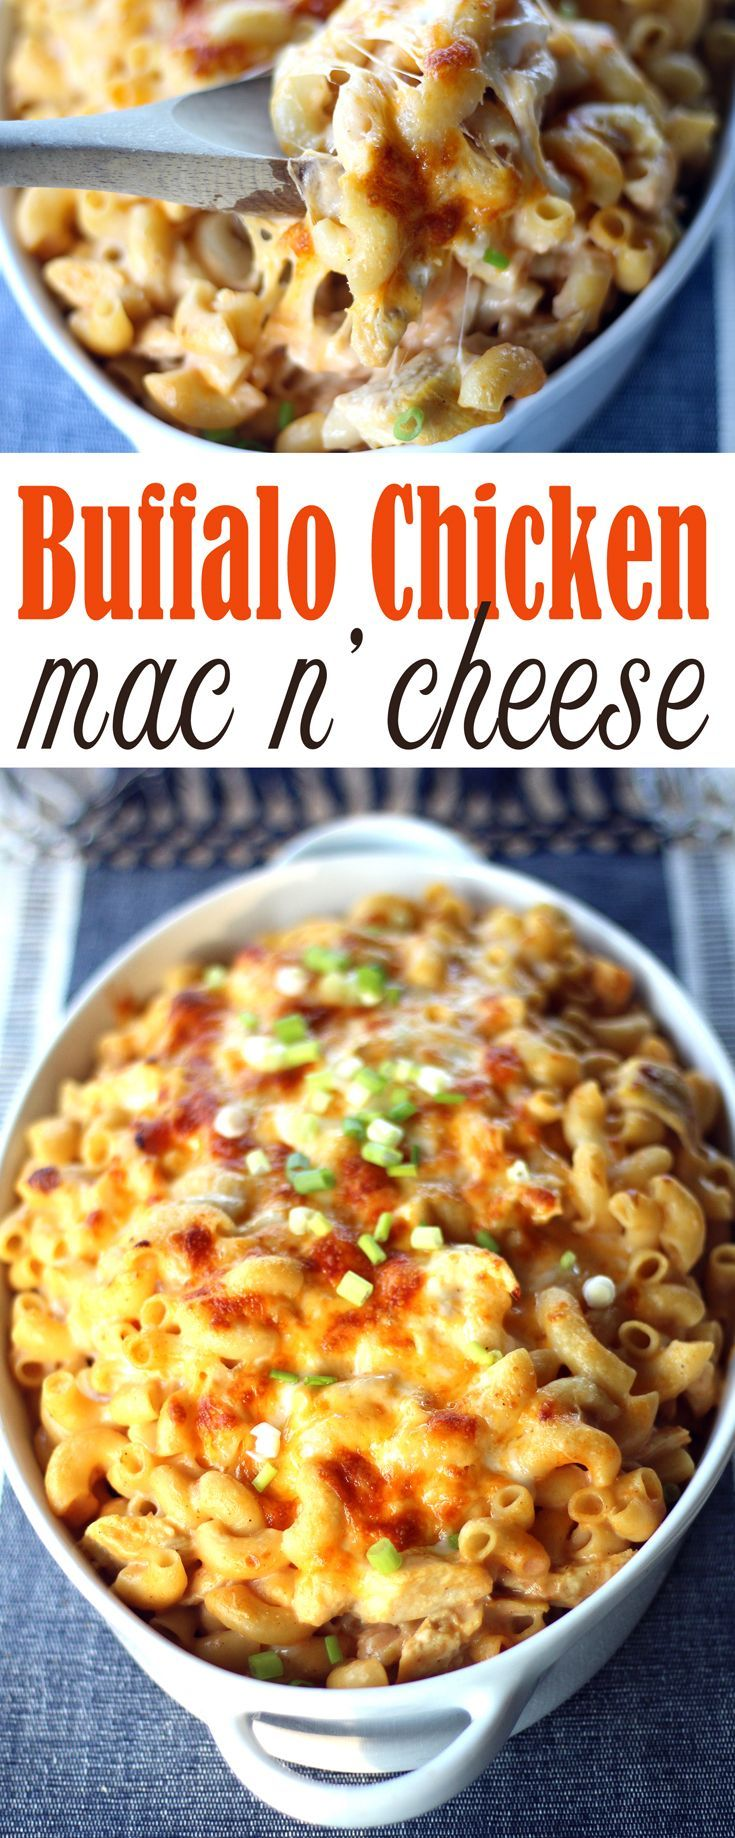 A classic dreamy-creamy mac and cheese recipe made yummier by adding grilled chopped chicken and loads of buffalo hot sauce. Buffalo Chicken Mac and Cheese. via @Buy This Cook That